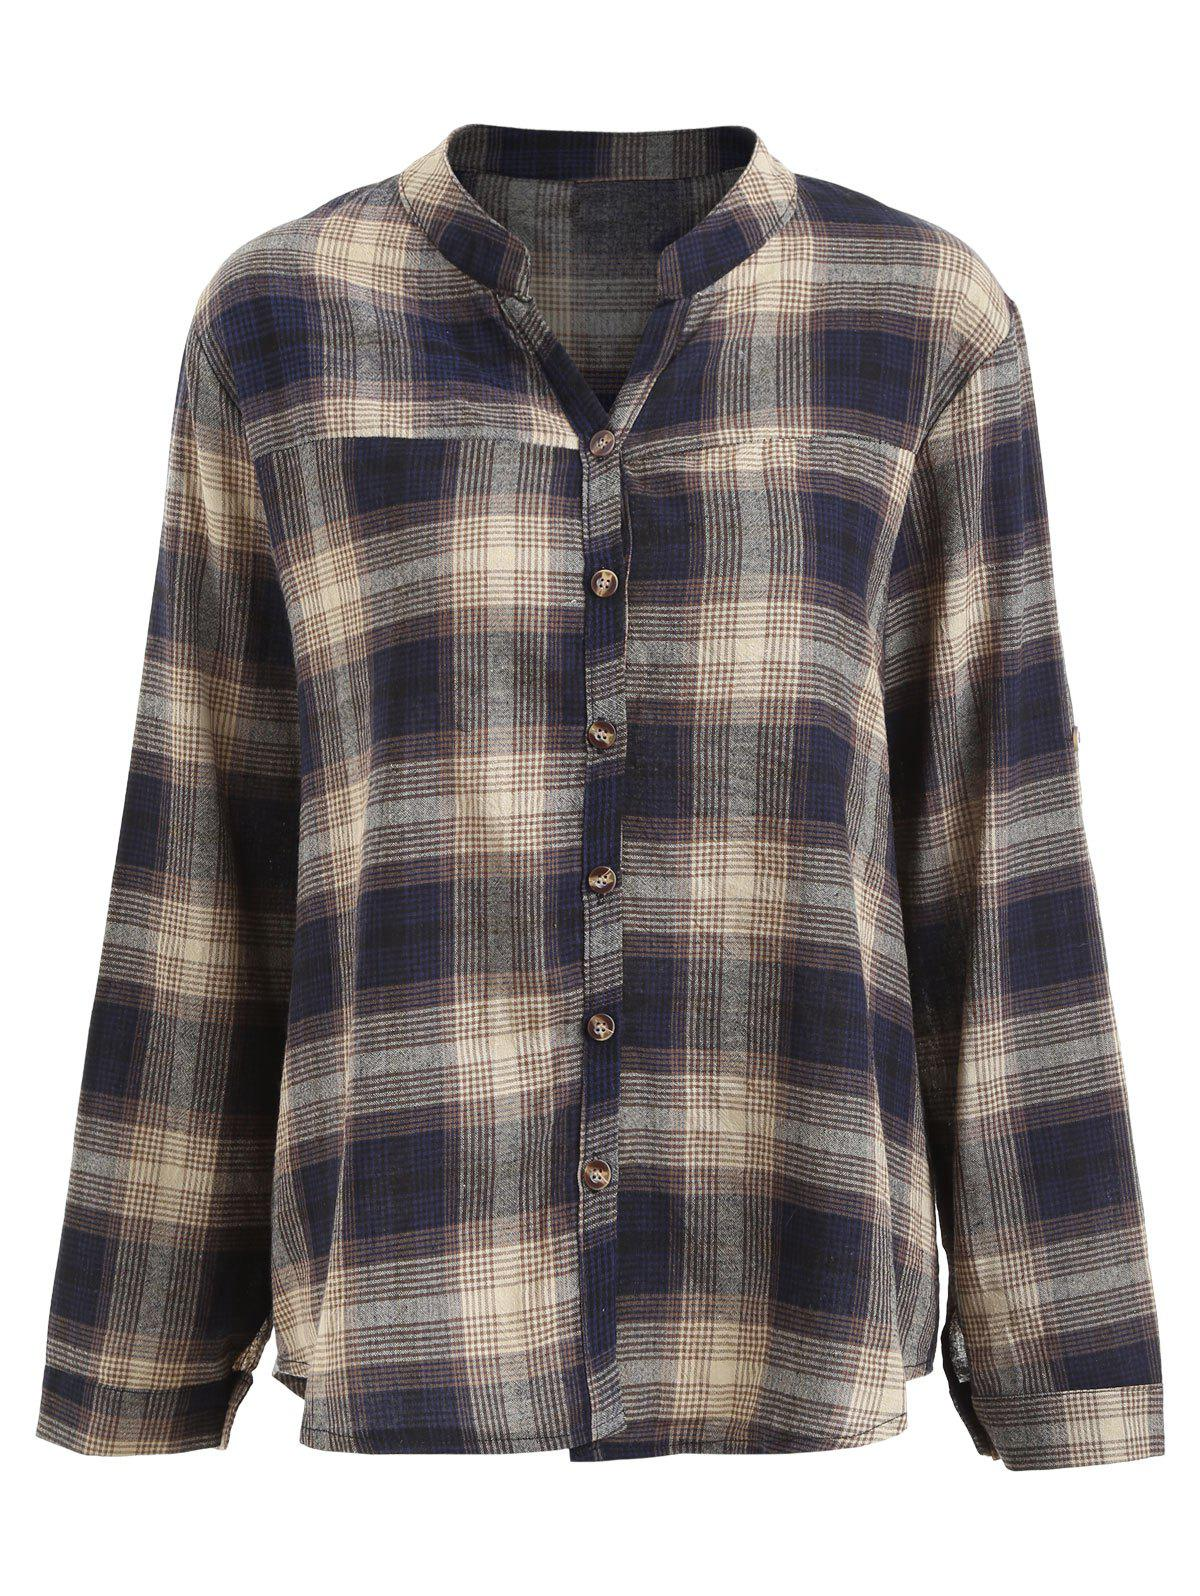 Button Up Plus Size Plaid Shirt for free post ac3000 series air filter combinations safe excellent brand fifteen years of only do the machine mask